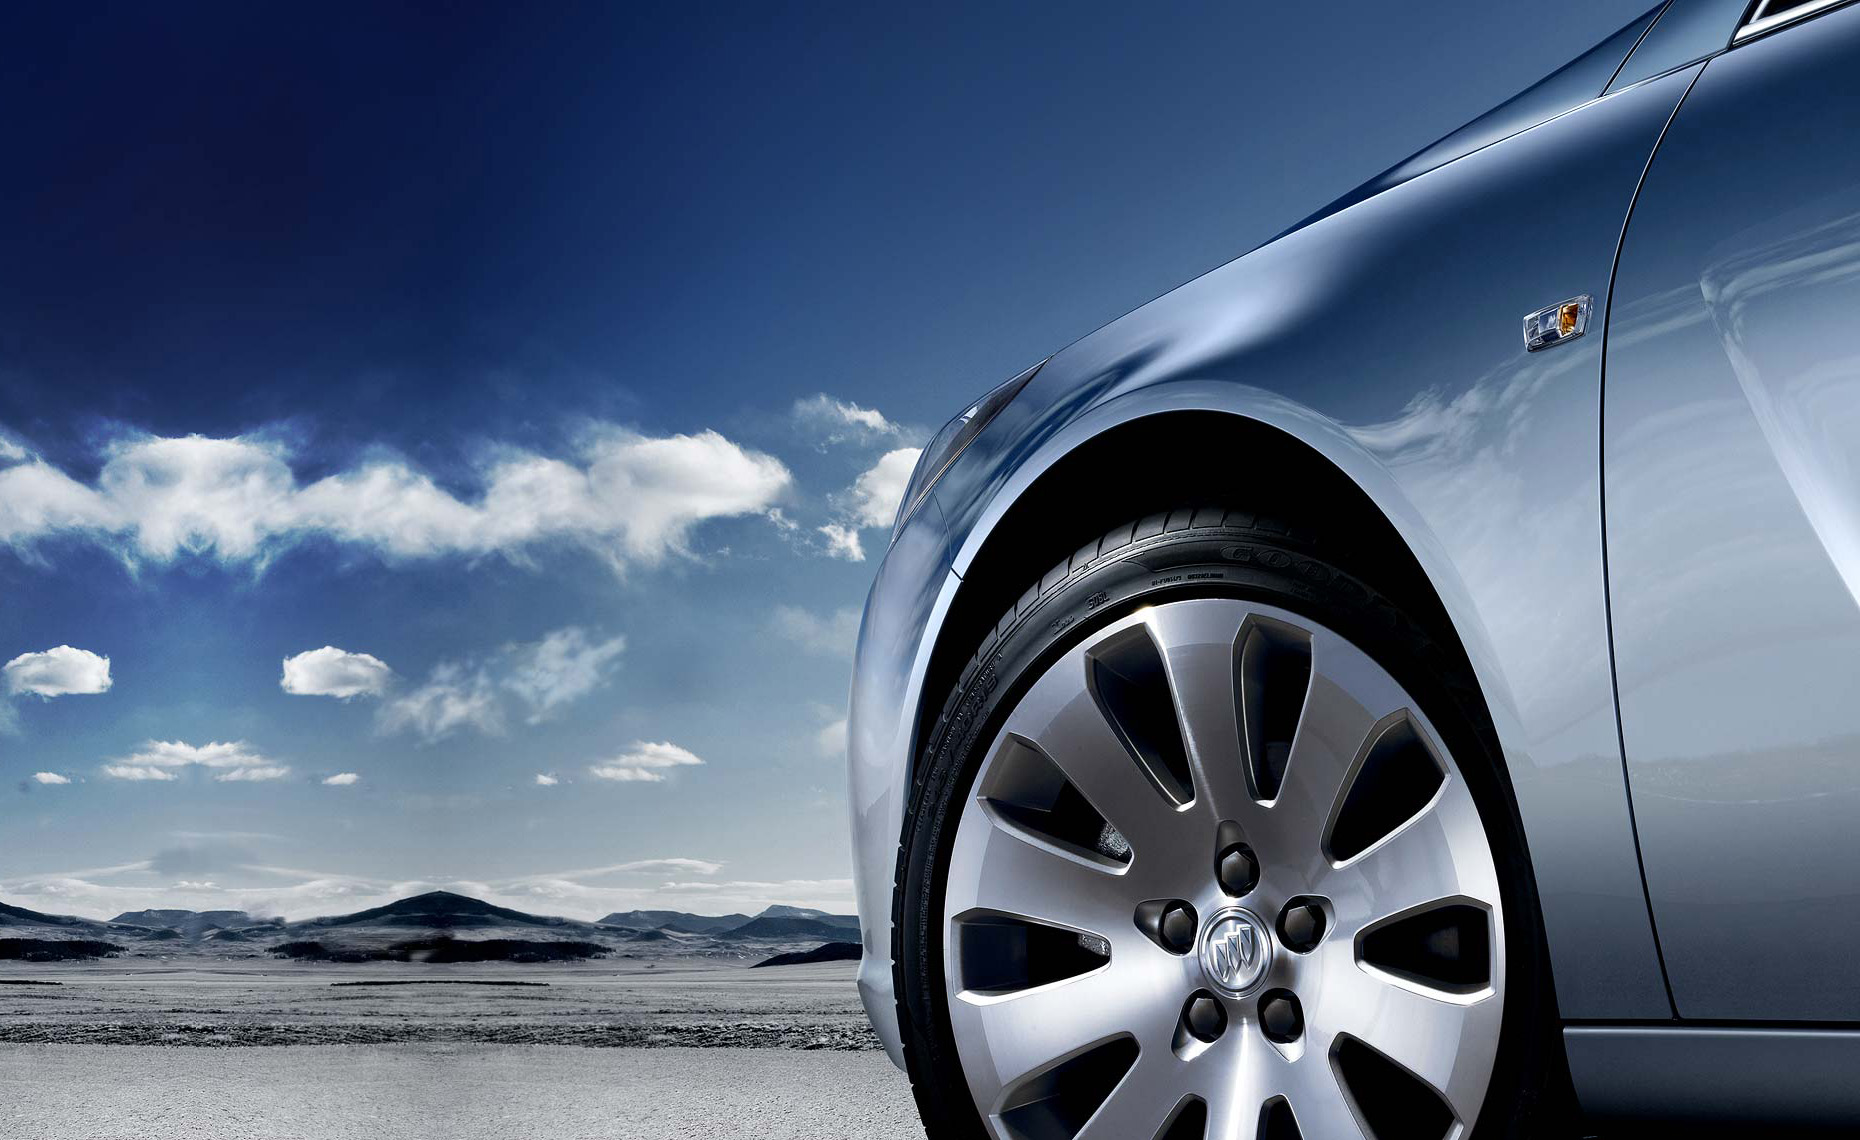 2011 buick regal-wheel-sky background-extended Rside.jpg